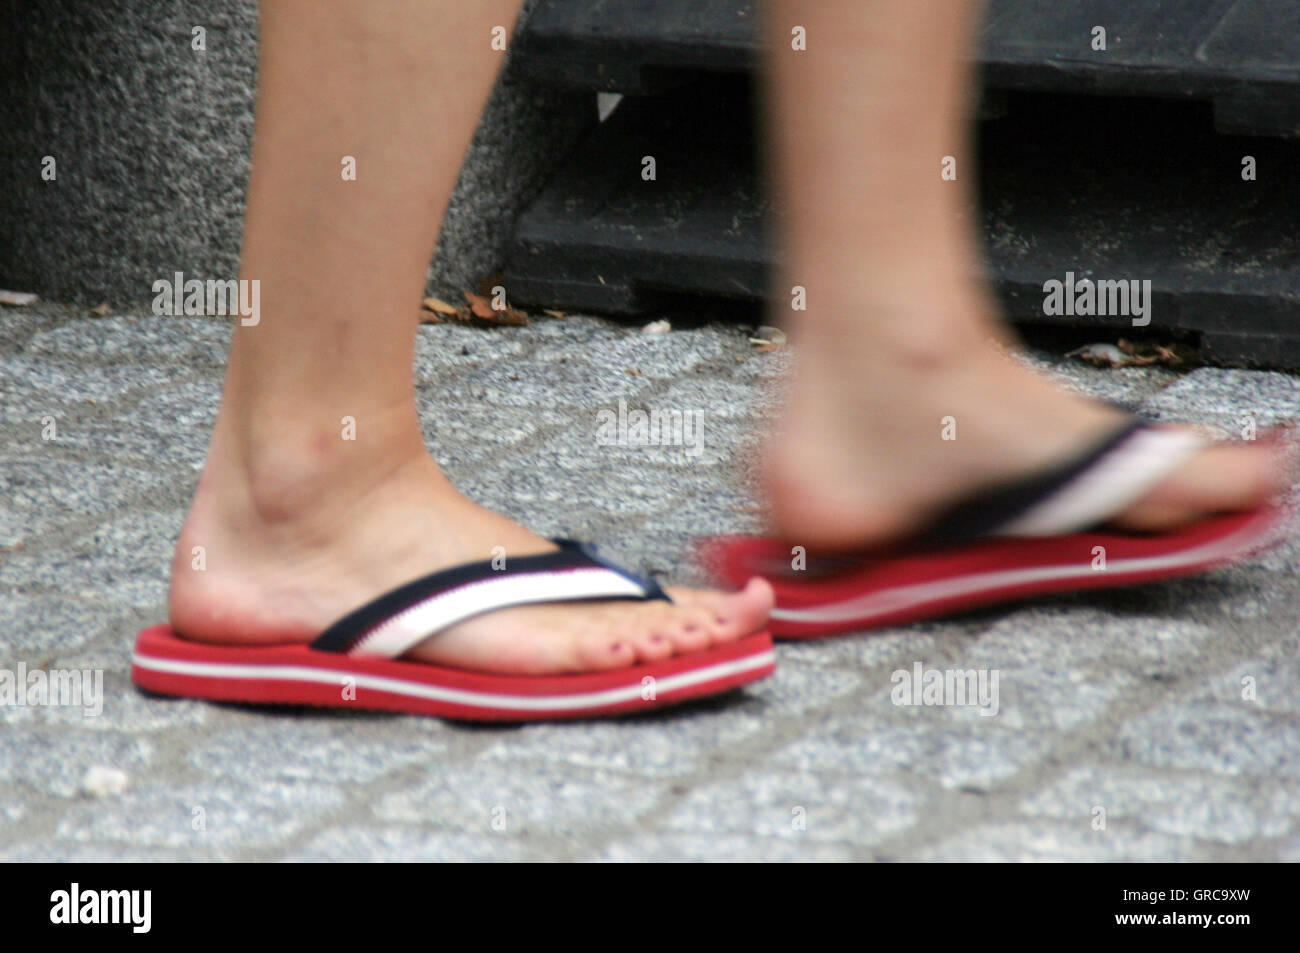 15cc2a183 Painted Toenails Stock Photos   Painted Toenails Stock Images - Alamy